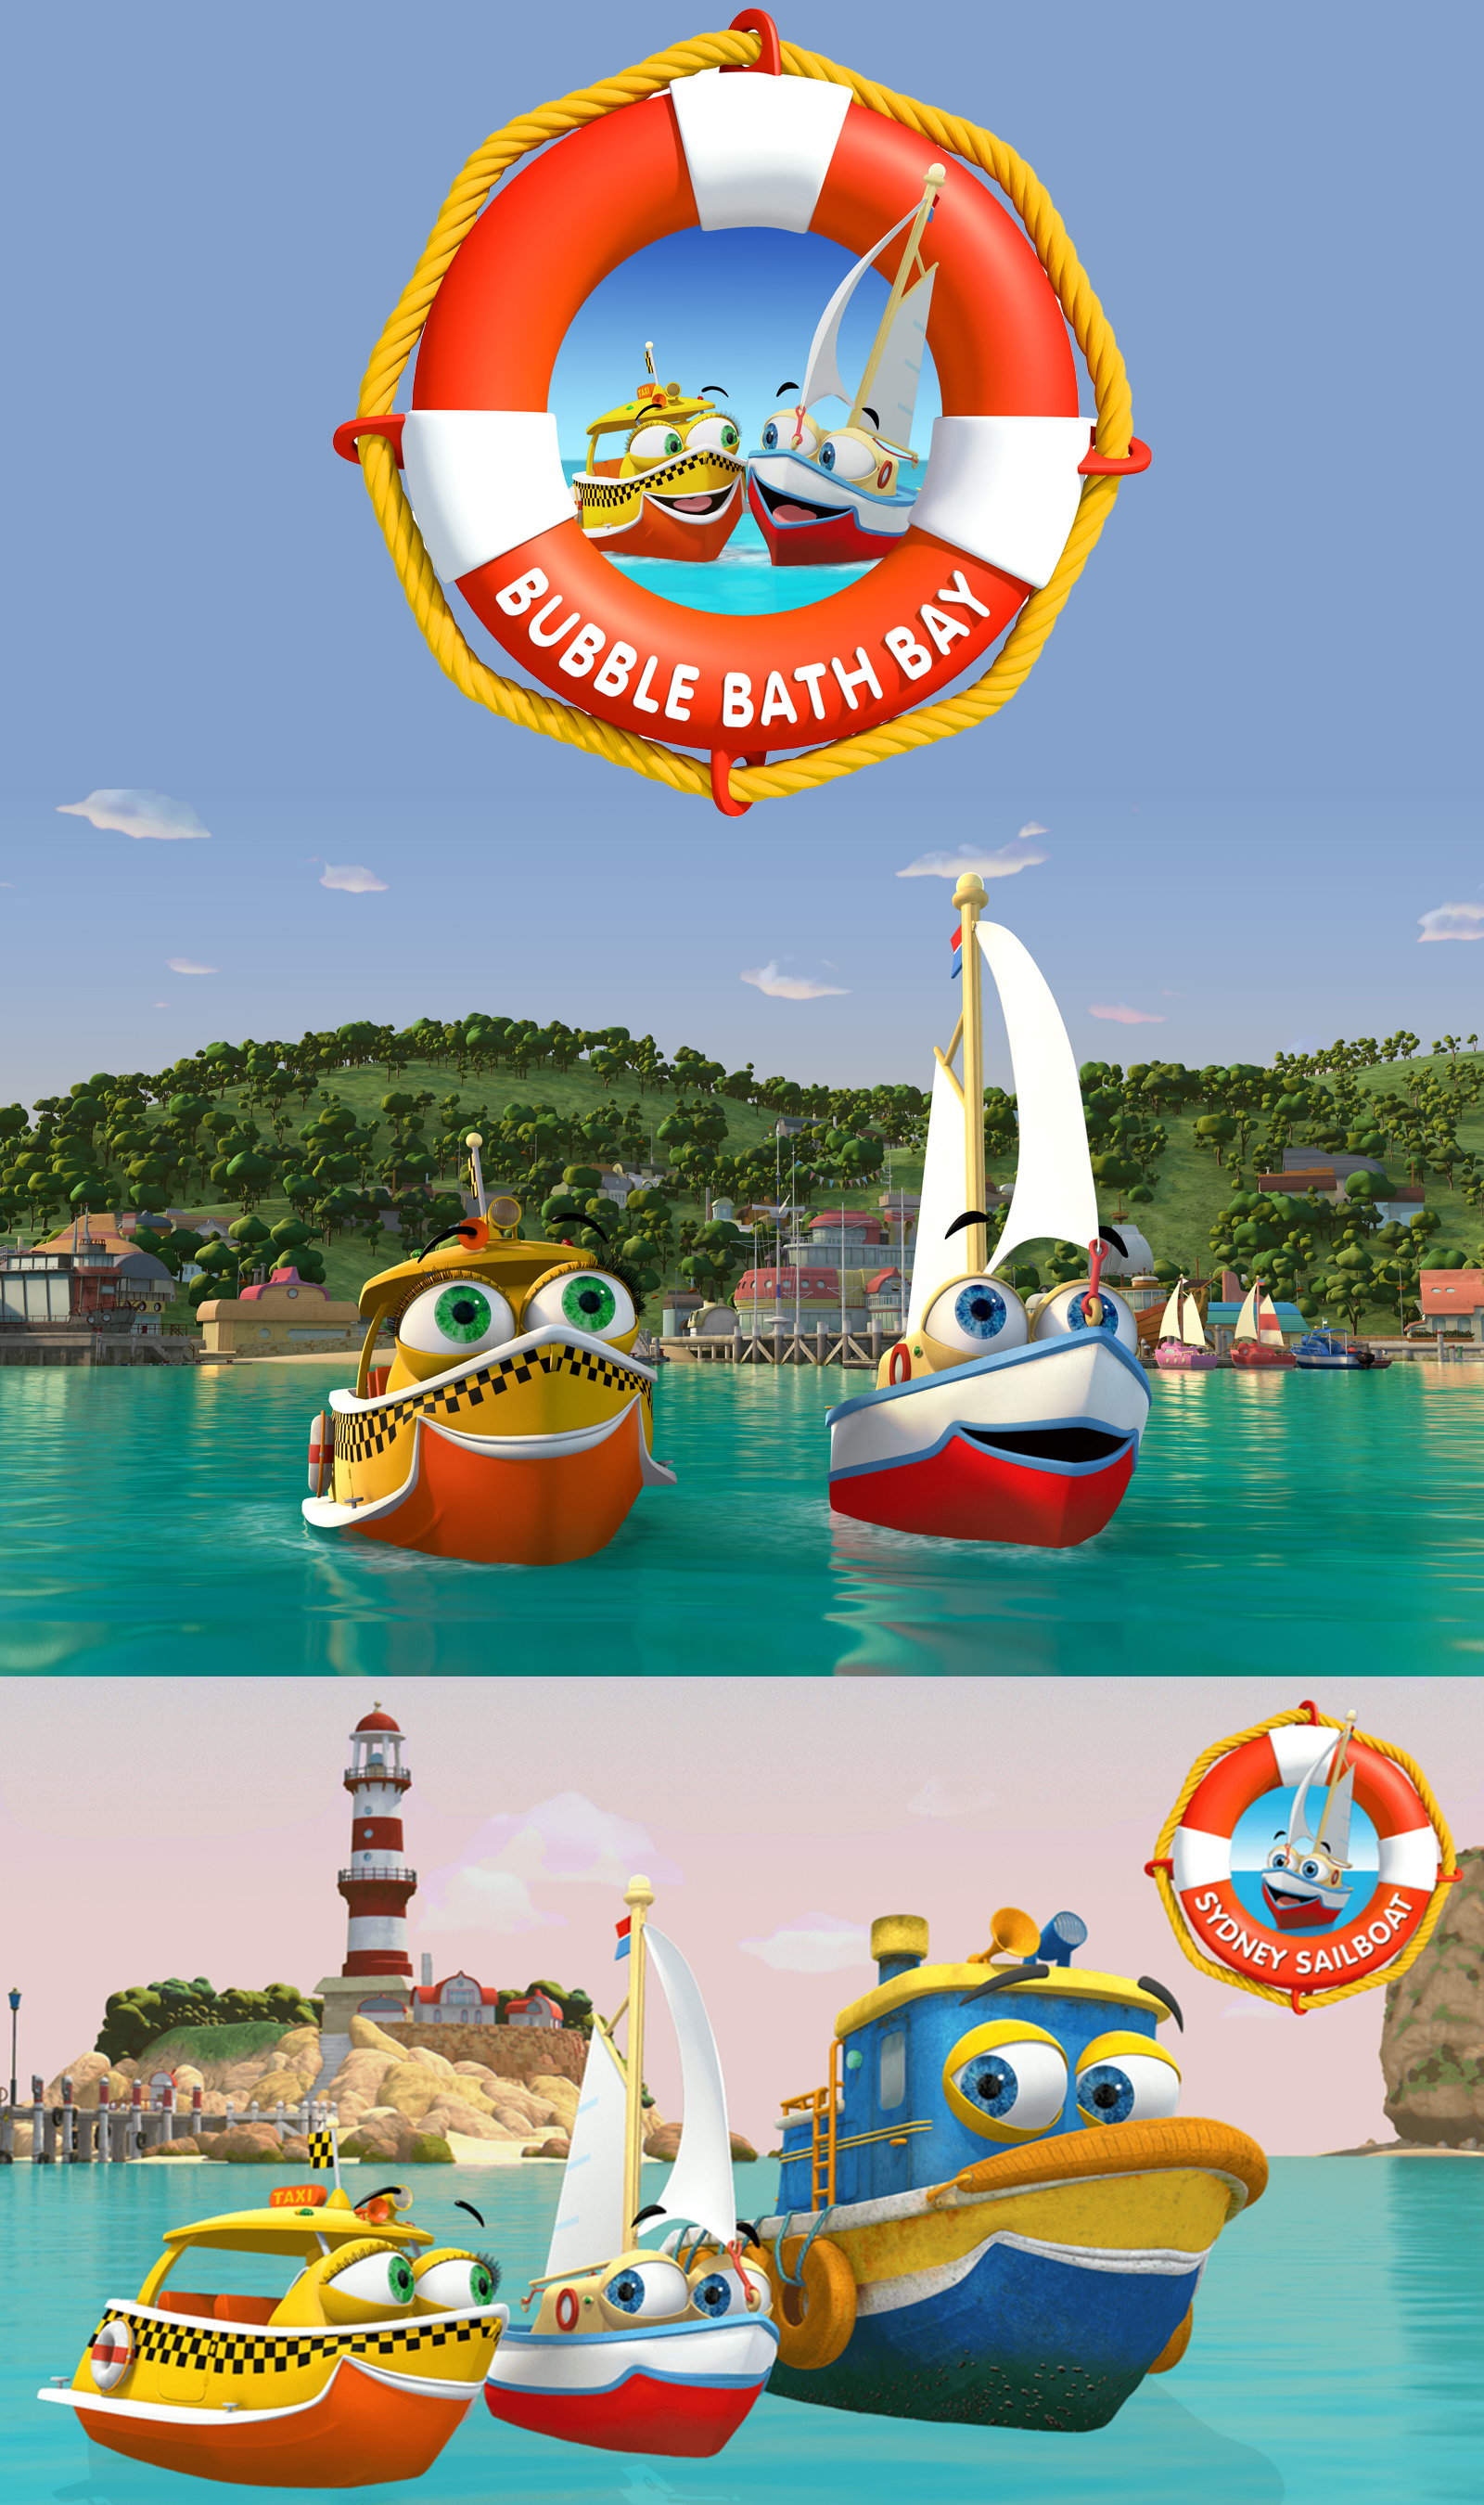 BUBBLE BATH BAY - Bubble Bath Bay is an animated pre-school series about the adventures of Sydney the Sailboat and his fleet of friends who live in Bubble Bath Bay.Fast-paced and full of fun and adventure, this animated series for pre-schoolers features best friends Sydney the Sailboat and Zip the trainee Water Taxi as they learn how to ride the waves of life alongside the other vessels of bustling Bubble Bath Bay.Year 2015Duration 52 x 11 minsProduction Partners Essential Media and Entertainment, Shambles Communications, Ideate Media, Telegael and Lemon SkyGenre CGI Animated Pre-School Series